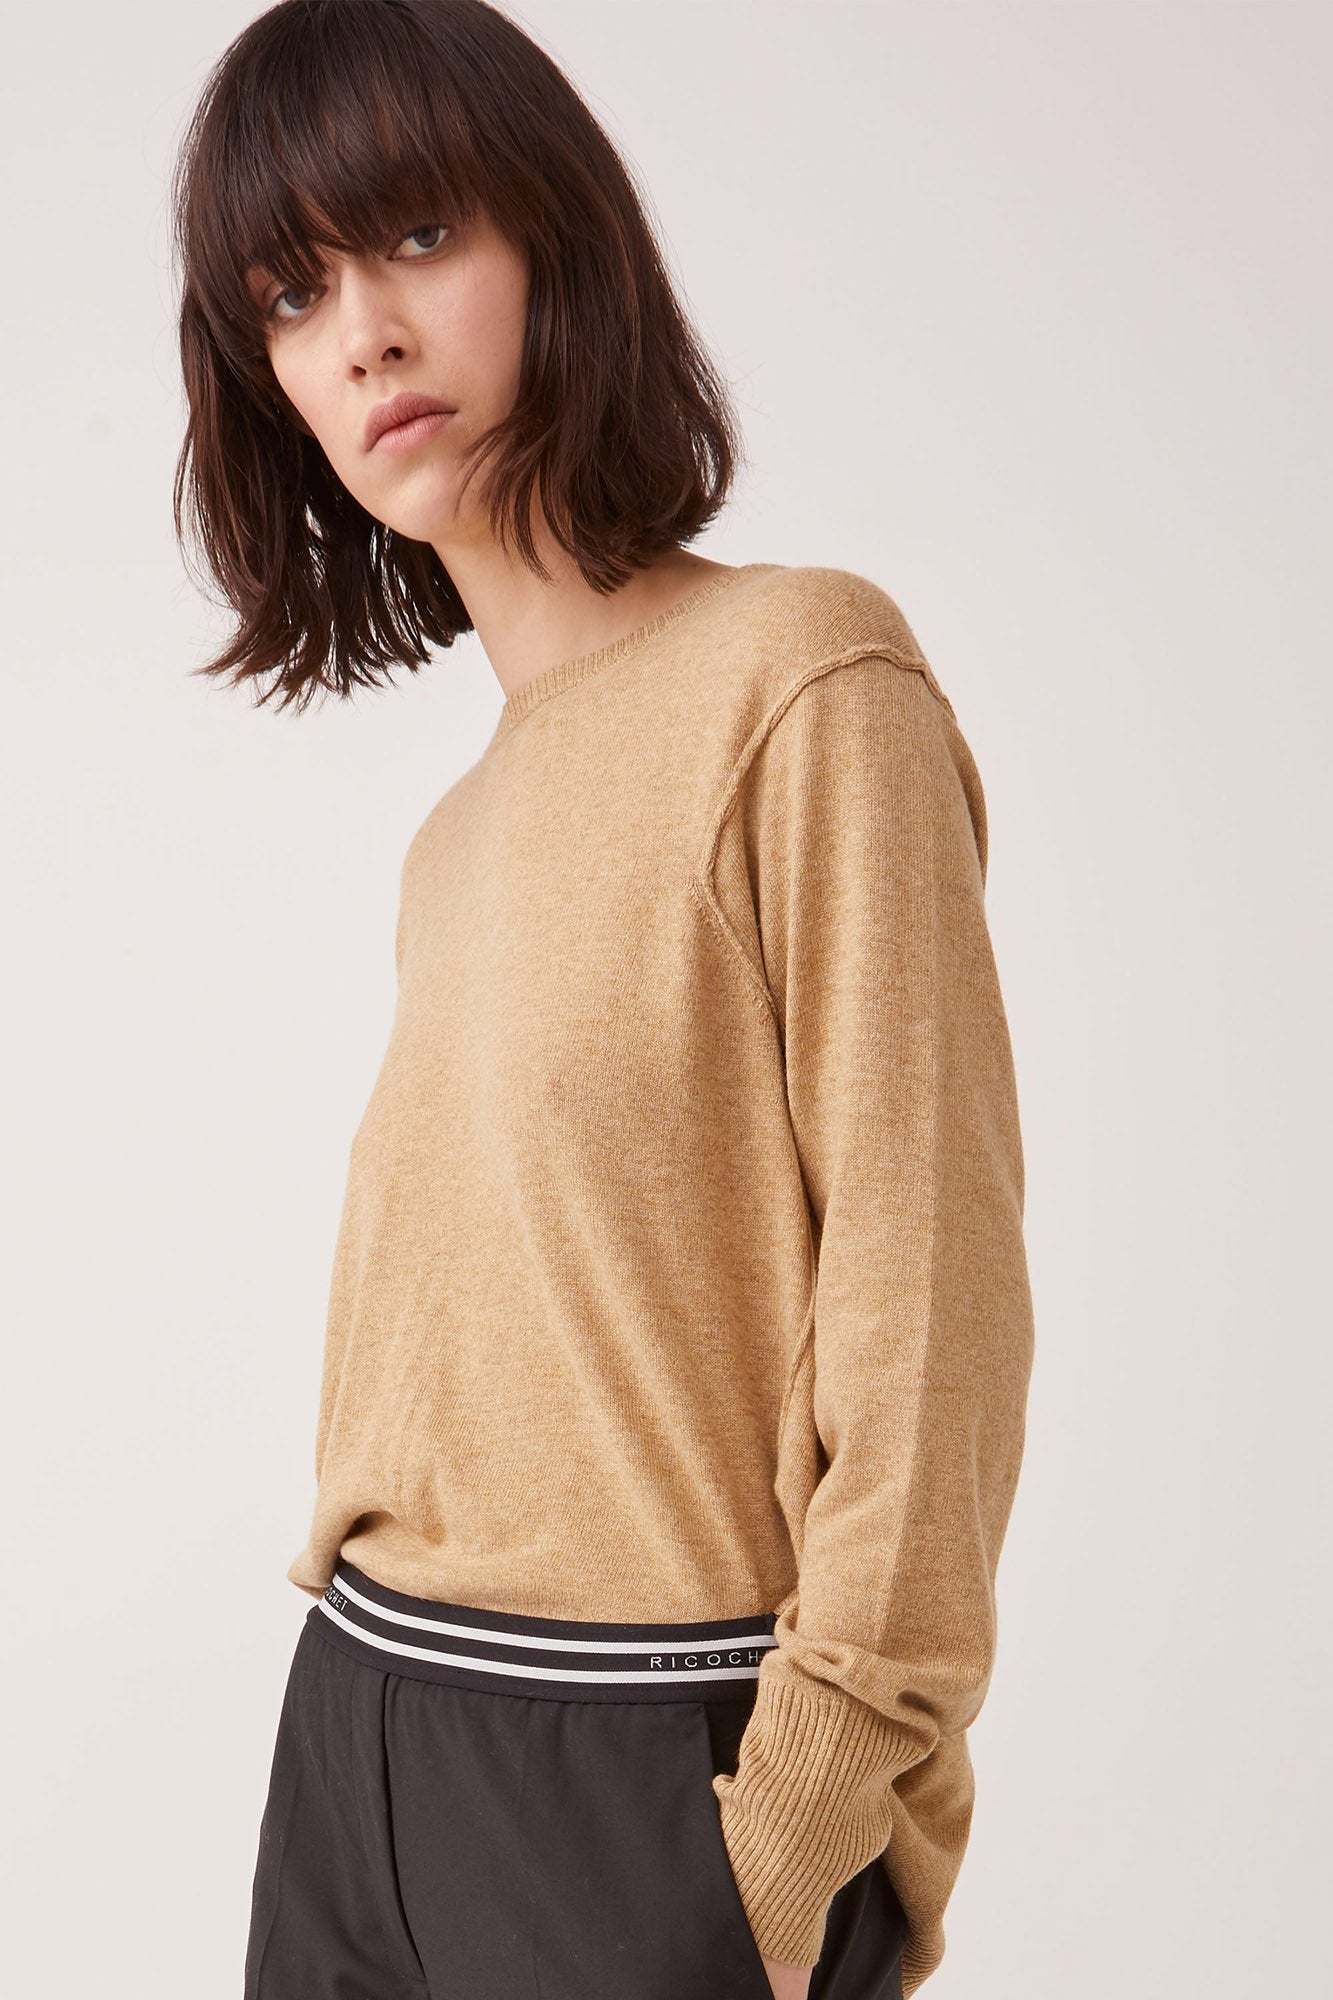 Ricochet NZ Fashion Designer Clothing Boutique AW19 Oria Jumper Knitwear Imported